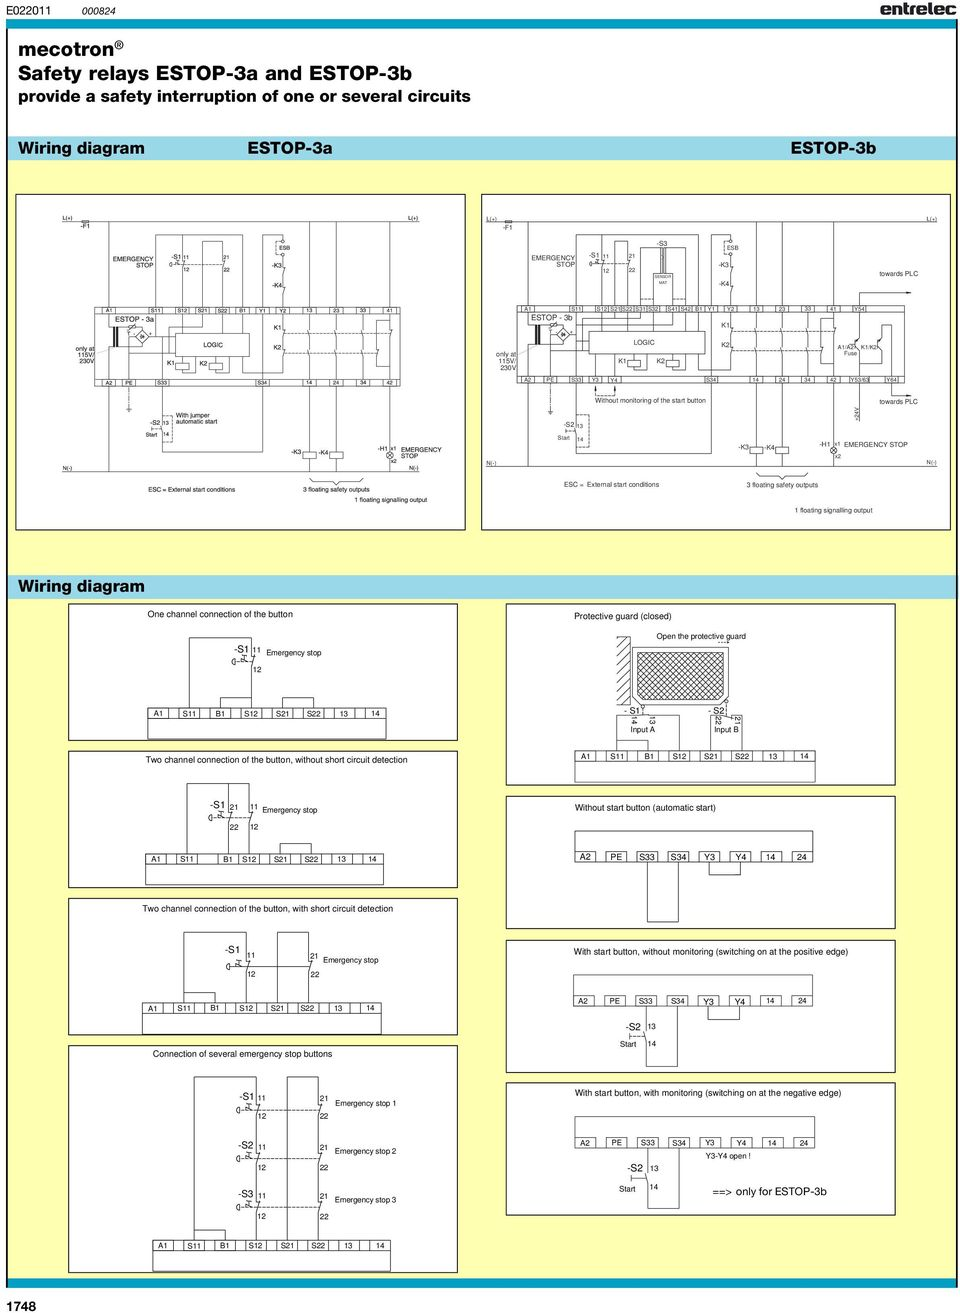 hight resolution of floating signalling output wiring diagram one channel connection of the button protective guard closed